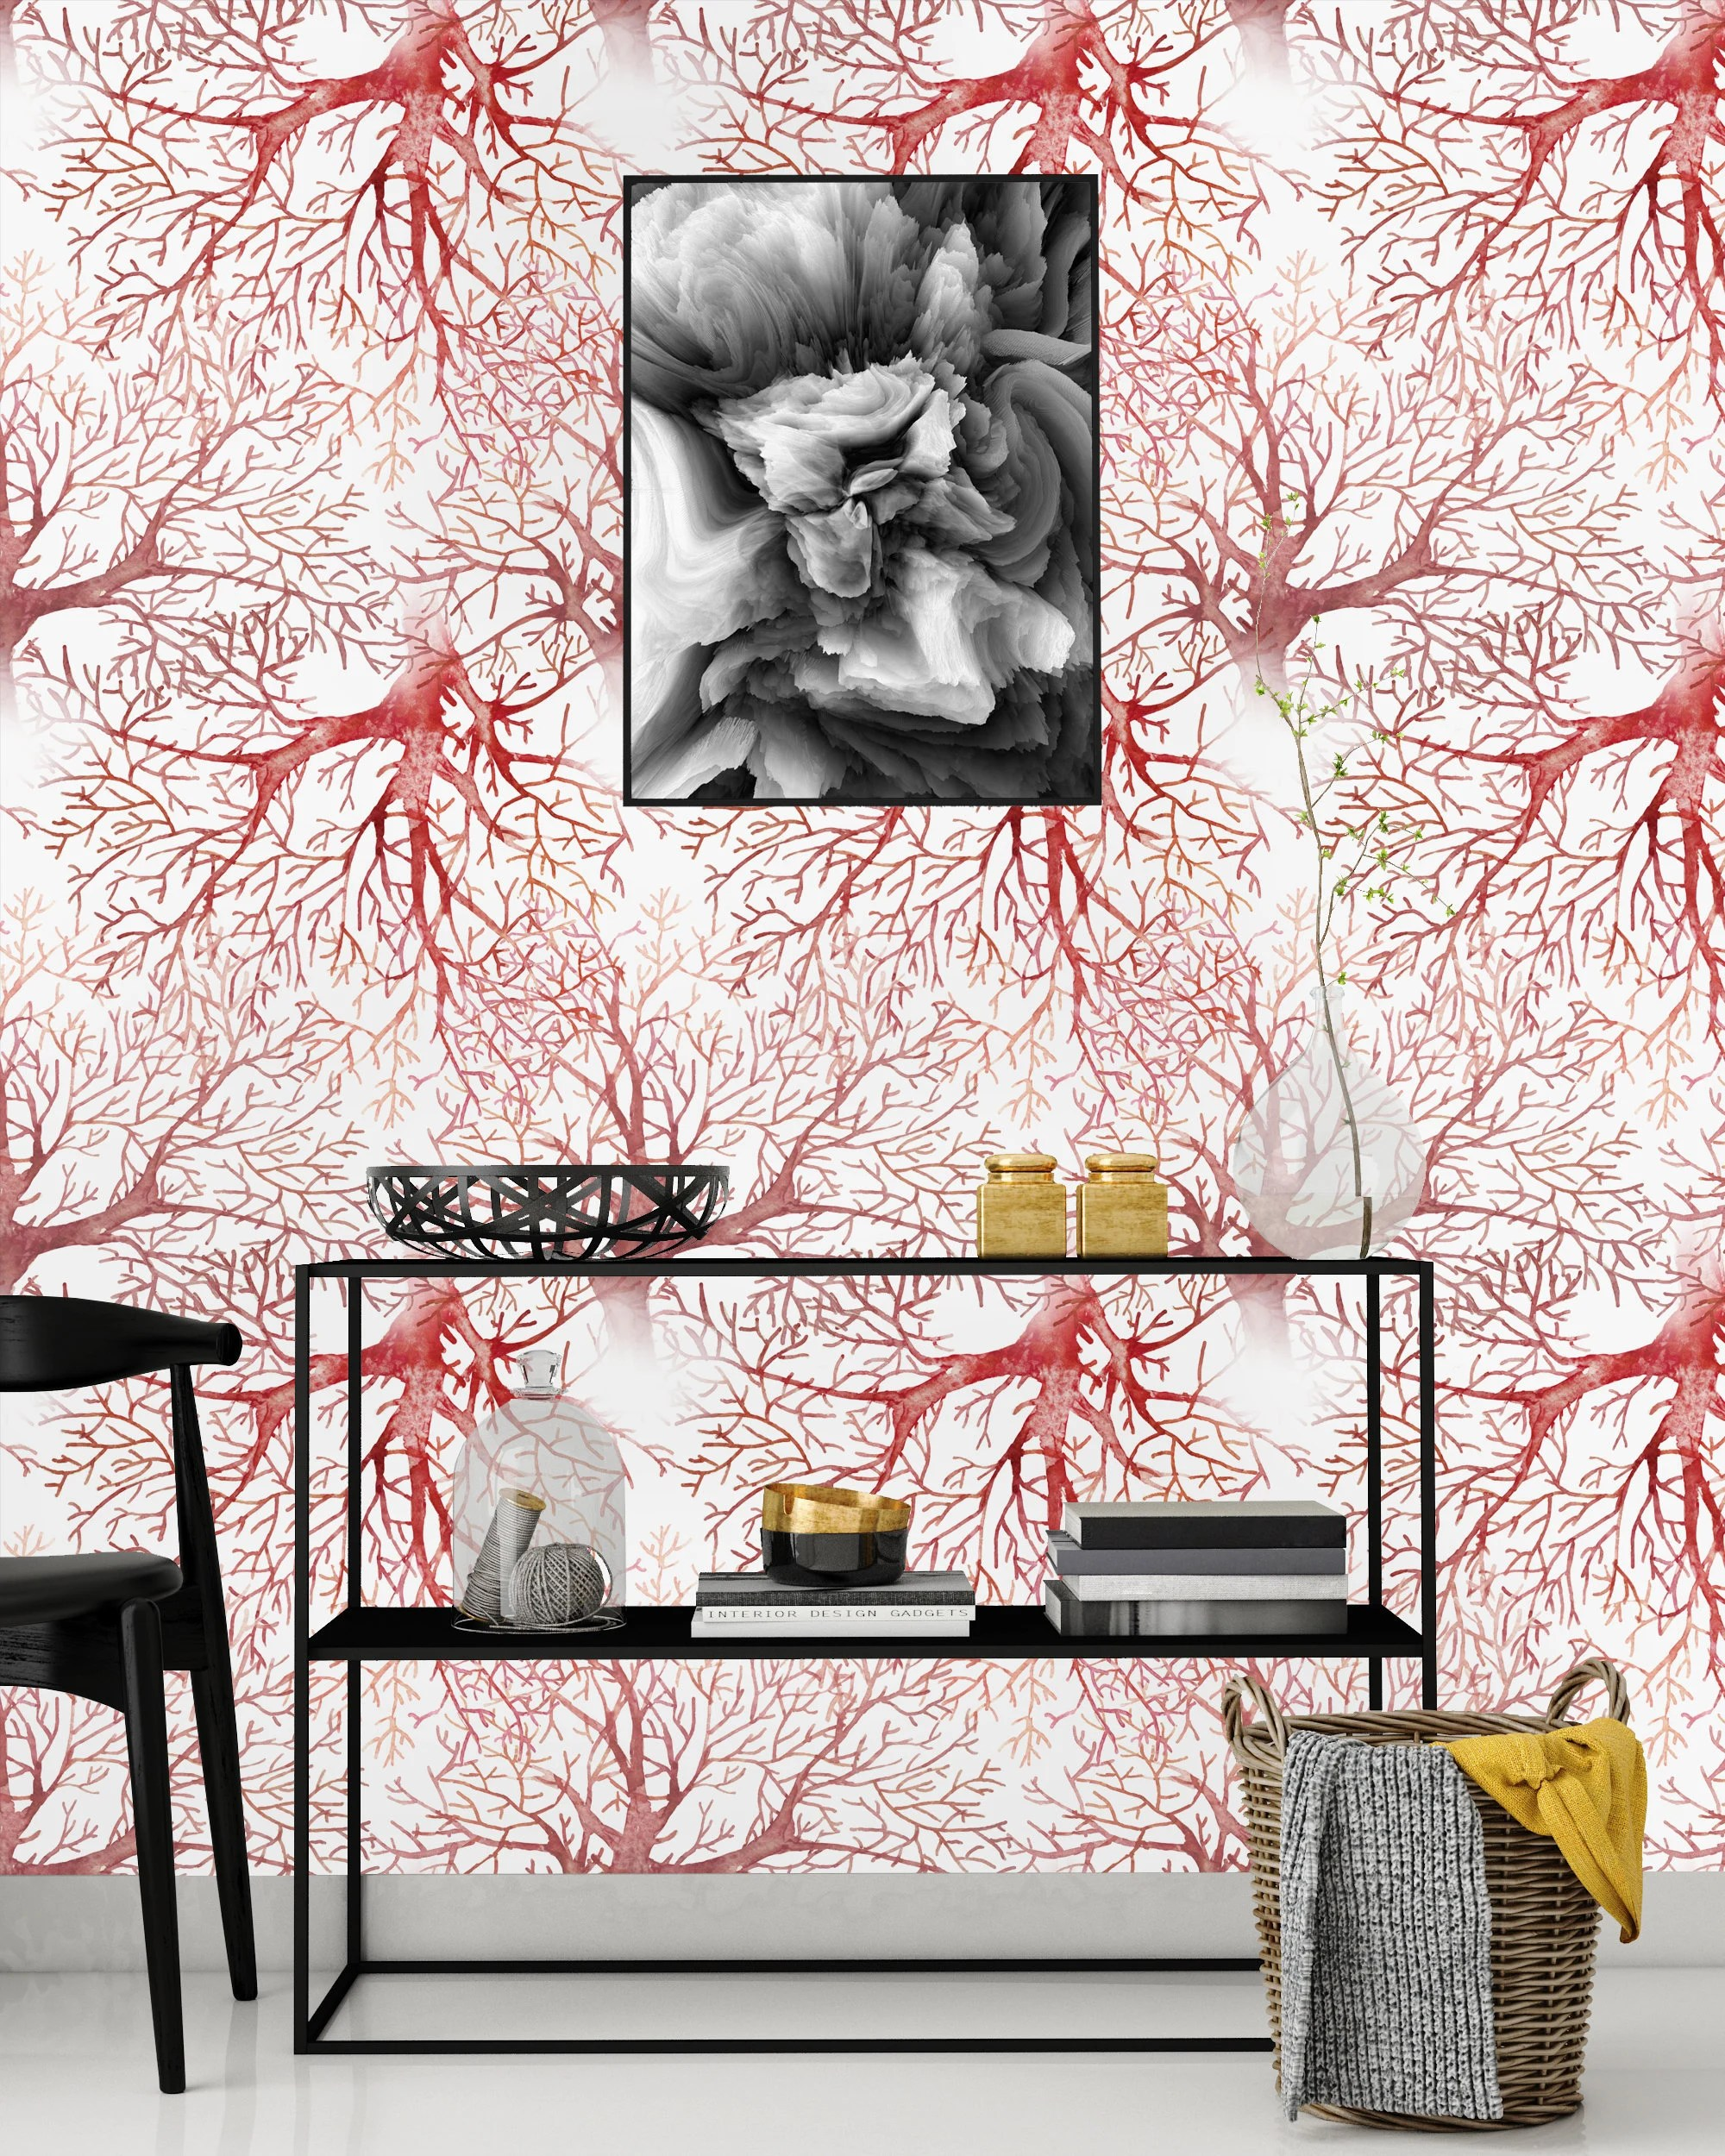 Nursery Decor Self Adhesive Wallpaper Peel Stick Mural Removable Wallpaper Coral Tree